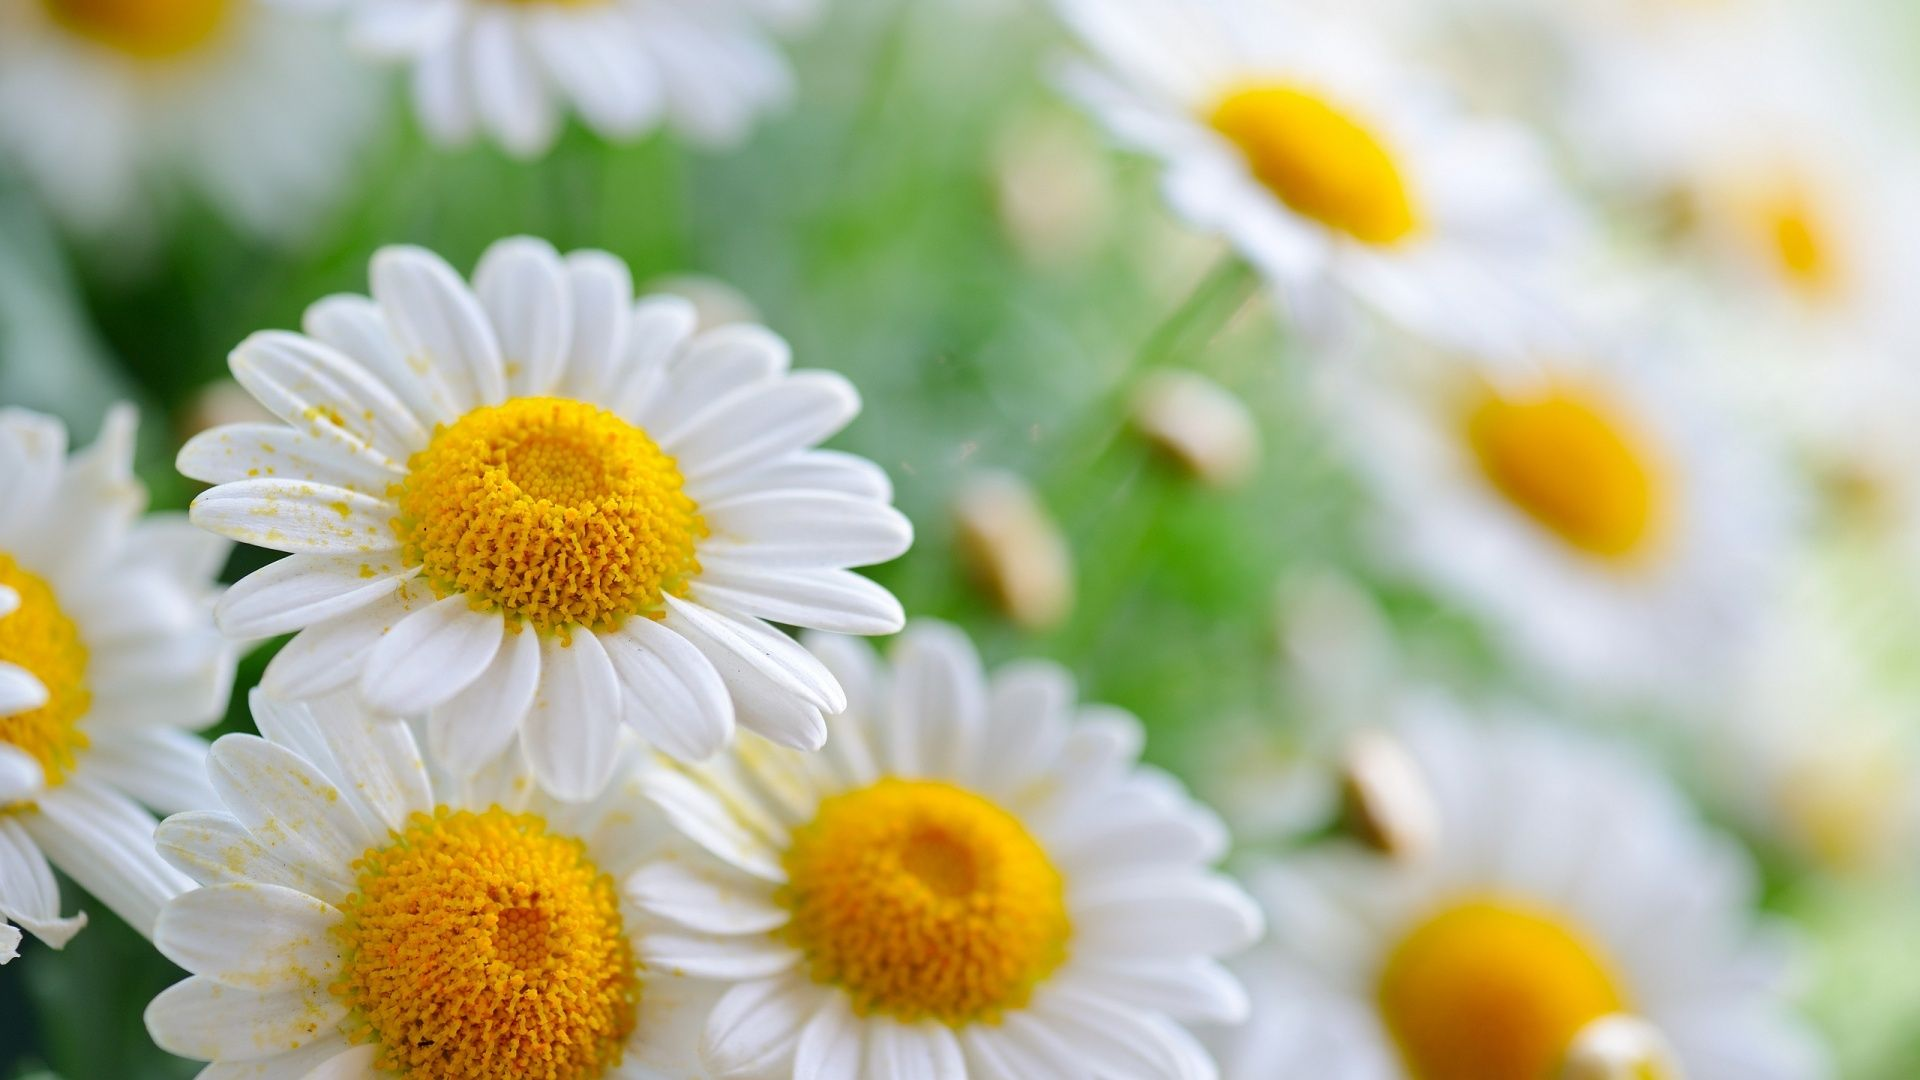 A daisy flower is composed of white petals and a yellow center a daisy flower is composed of white petals and a yellow center although the flower can sometimes have a pink or rose color description from izmirmasajfo